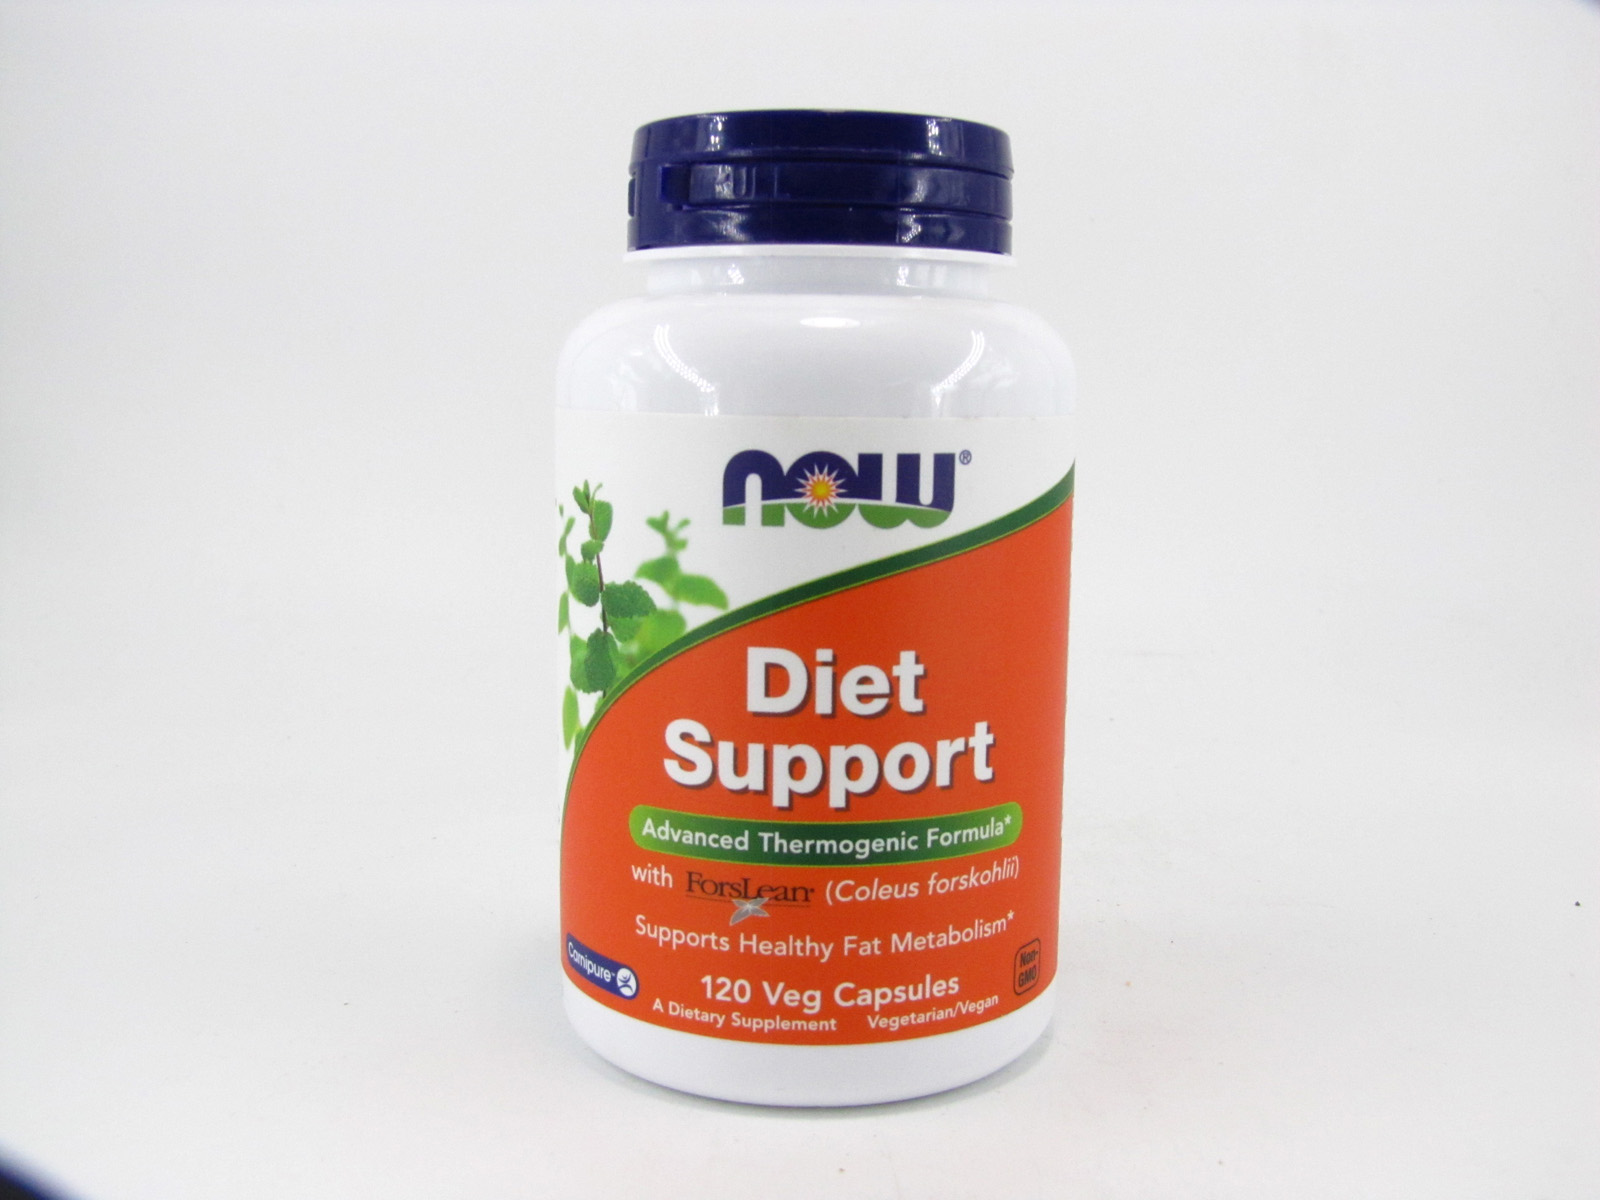 Now - Diet support 120 veg capsules | Ontario Nutrition